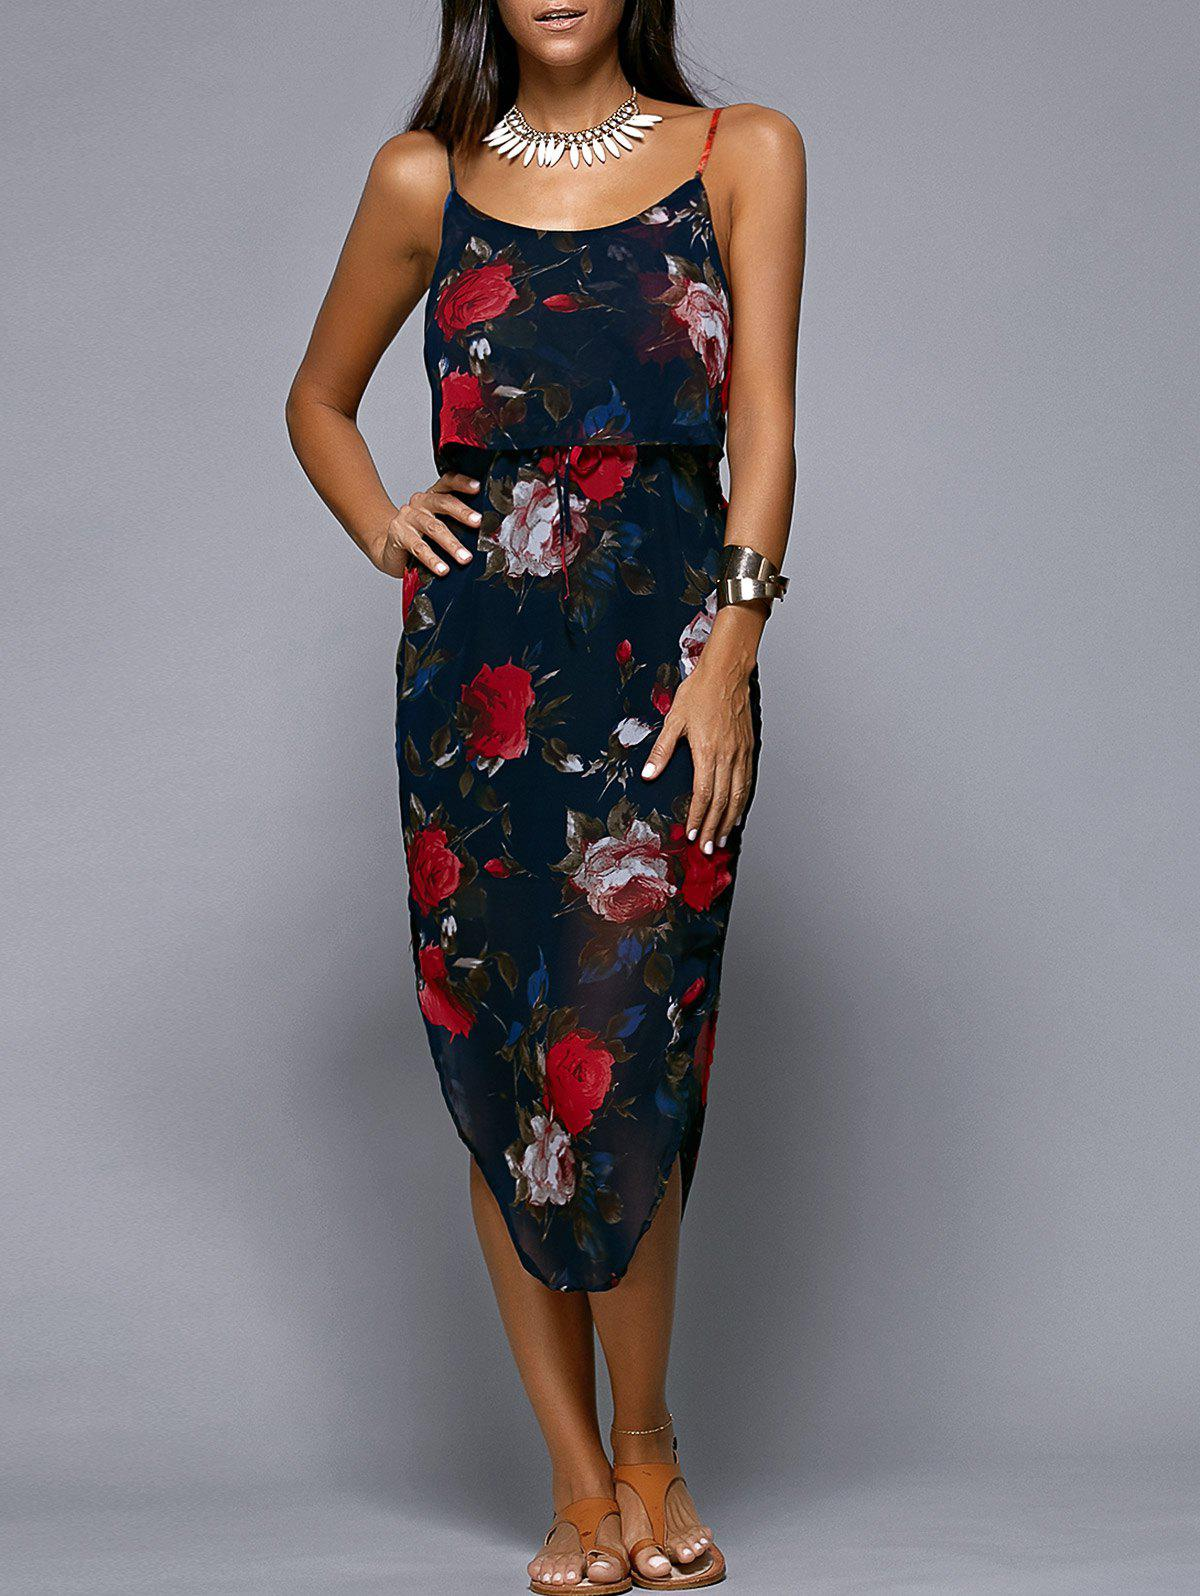 Spaghetti Strap Floral Print Asymmetric Midi Dress - PURPLISH BLUE L